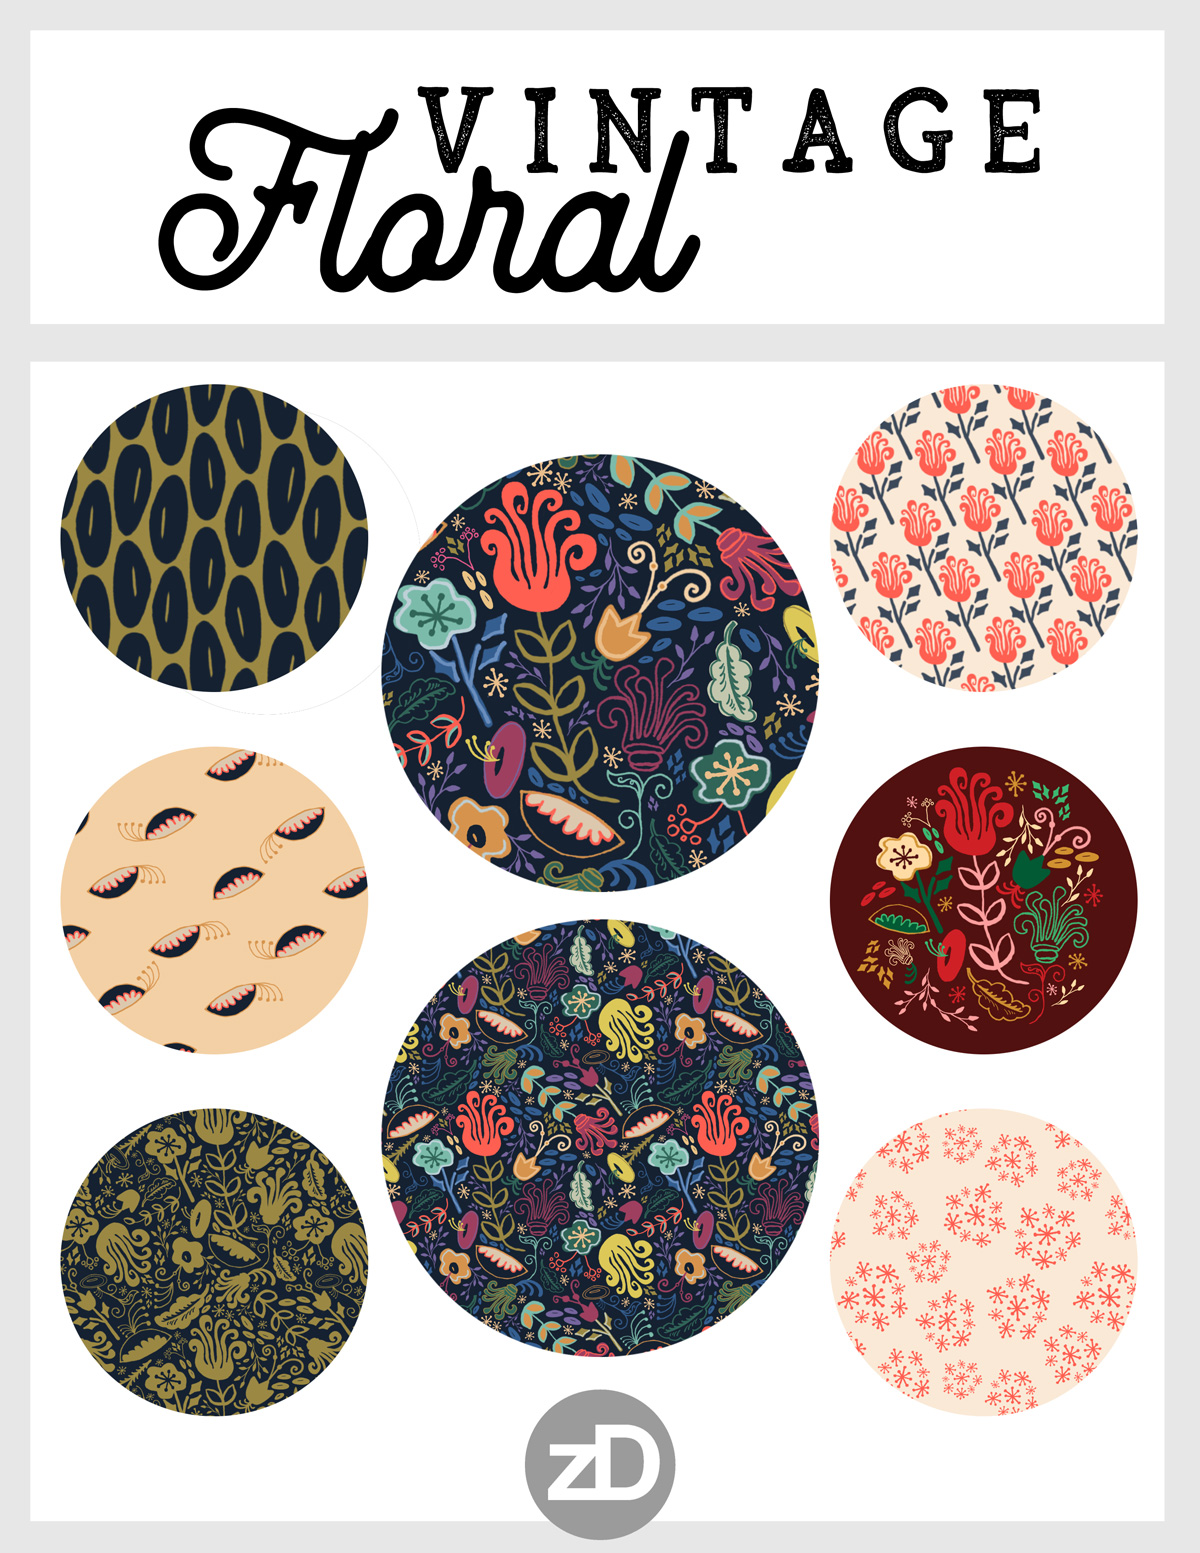 Zirkus Design | Funky Vintage Floral Collection: A Groovy Retro Feel in Salmon, Apricot, Navy, and Olive